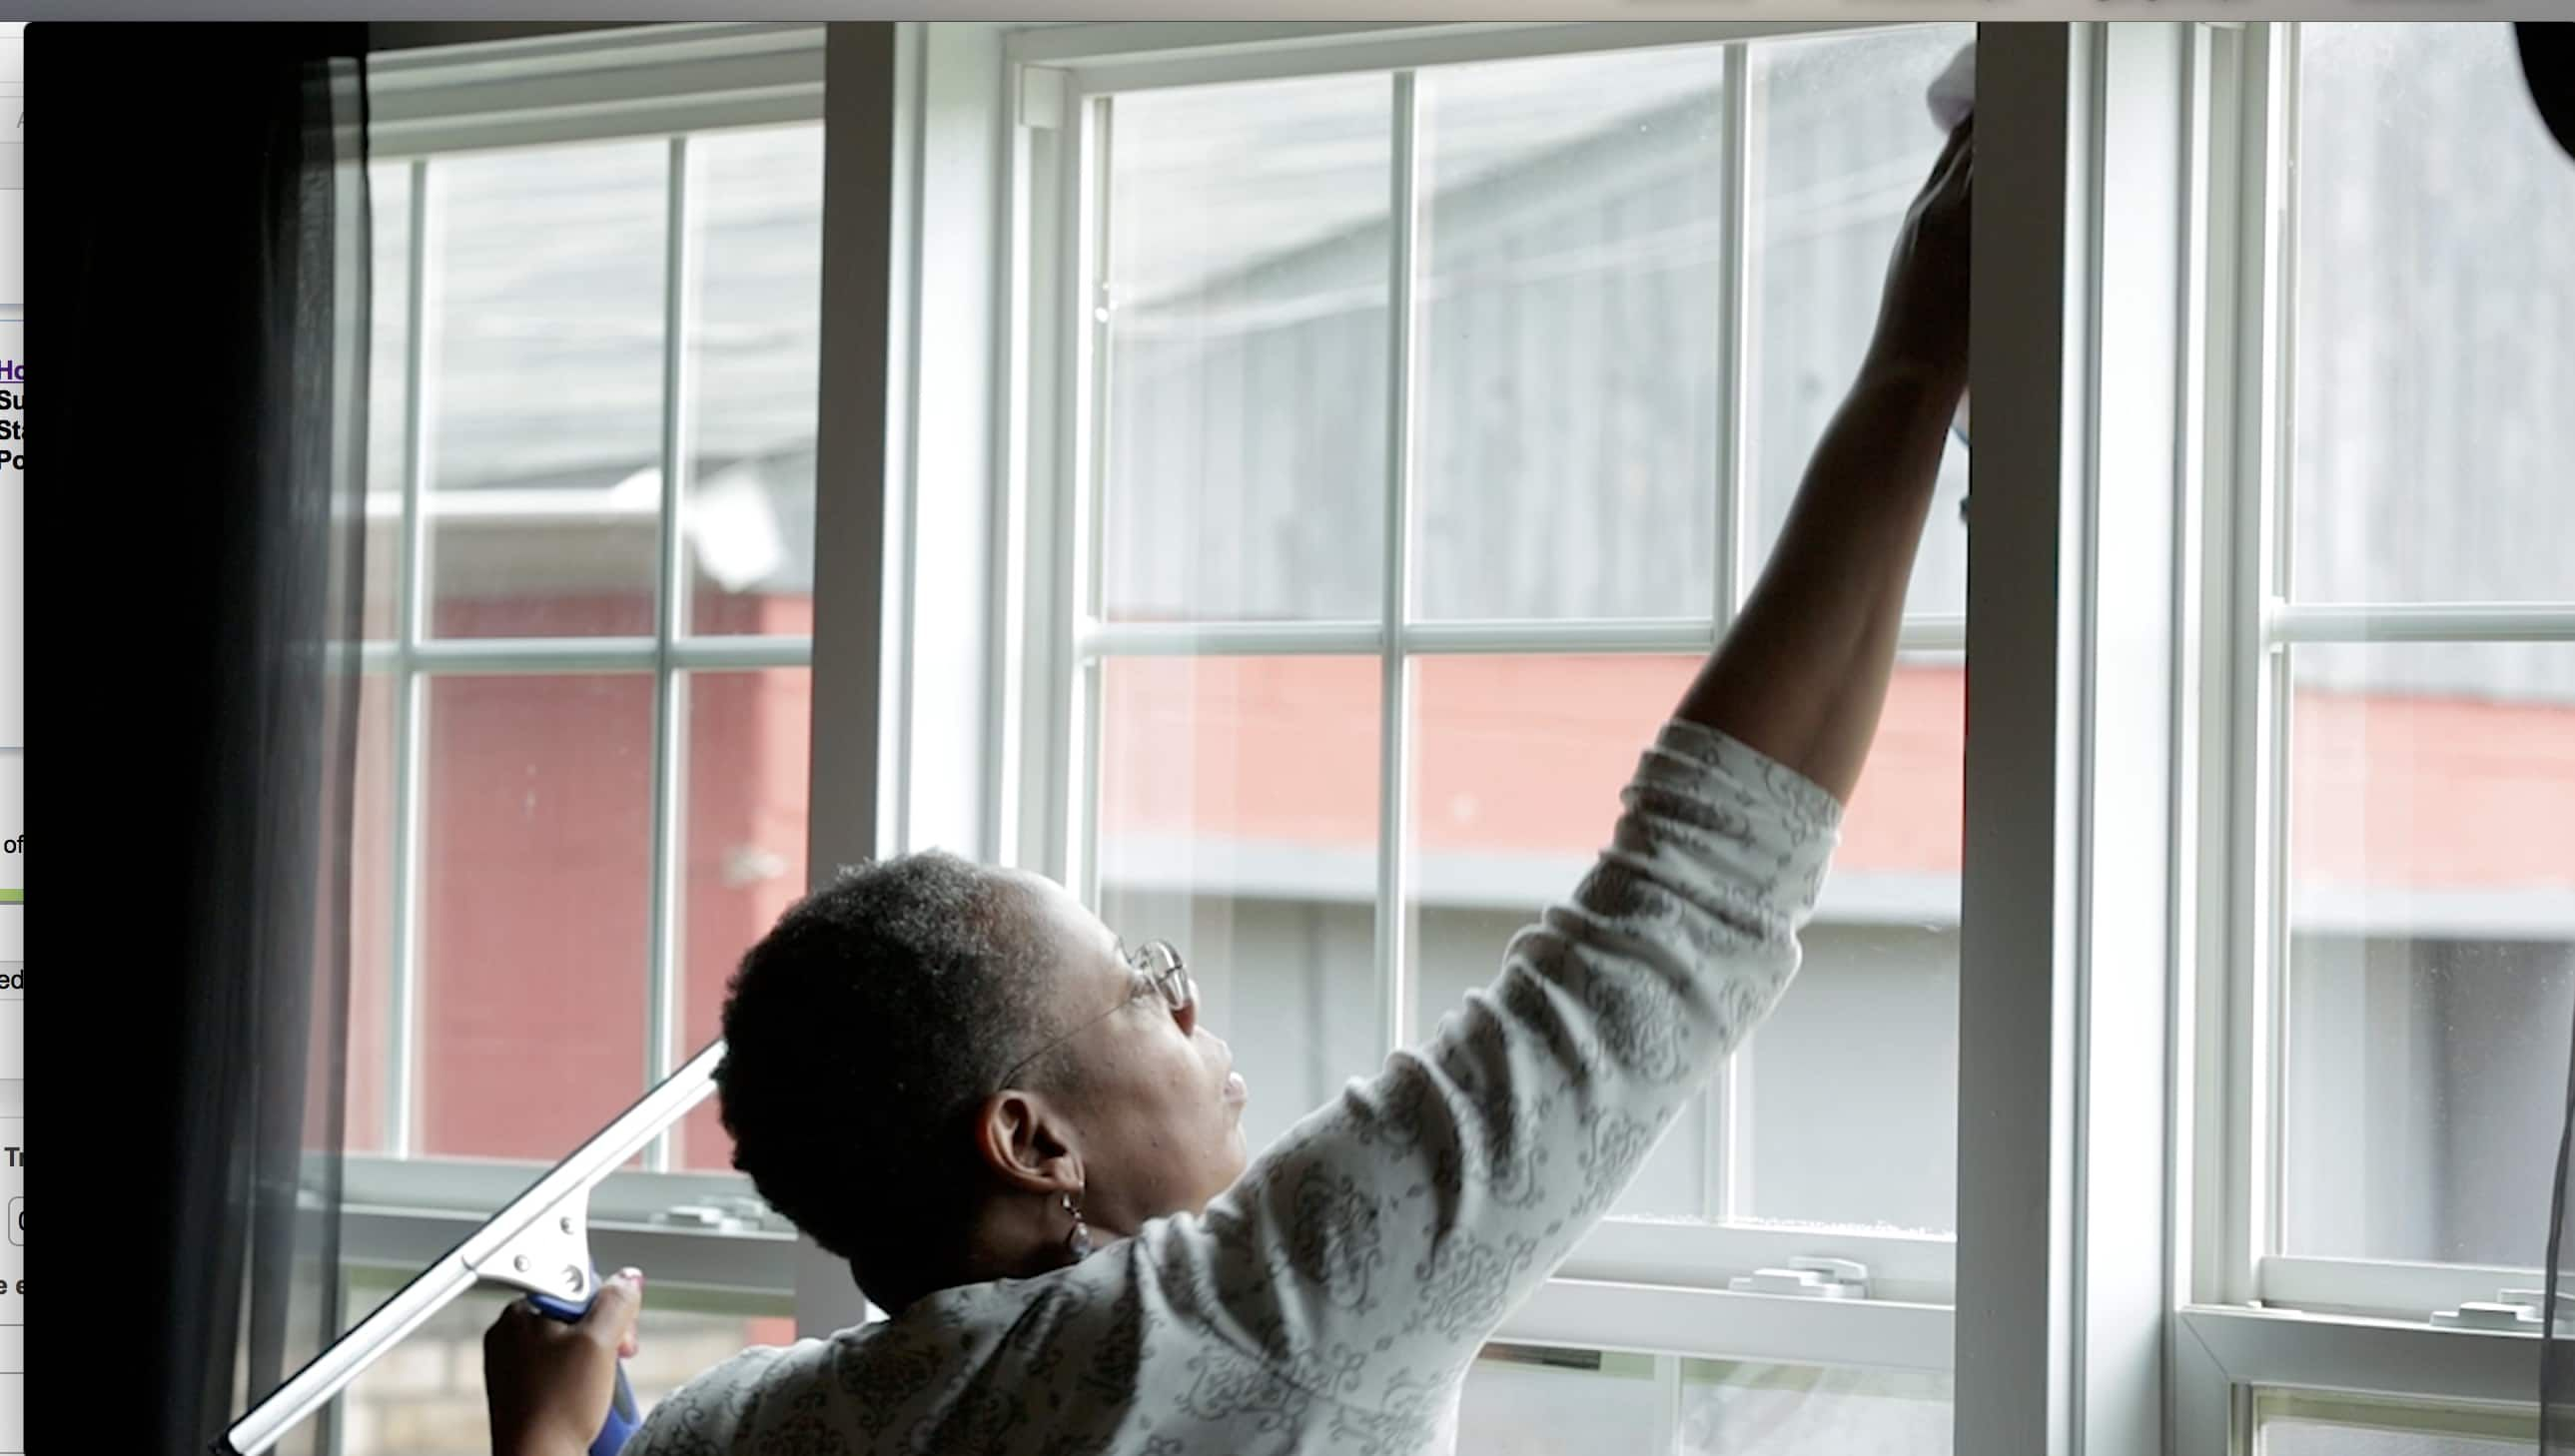 How Much Does Window Cleaning Cost? Window cleaner